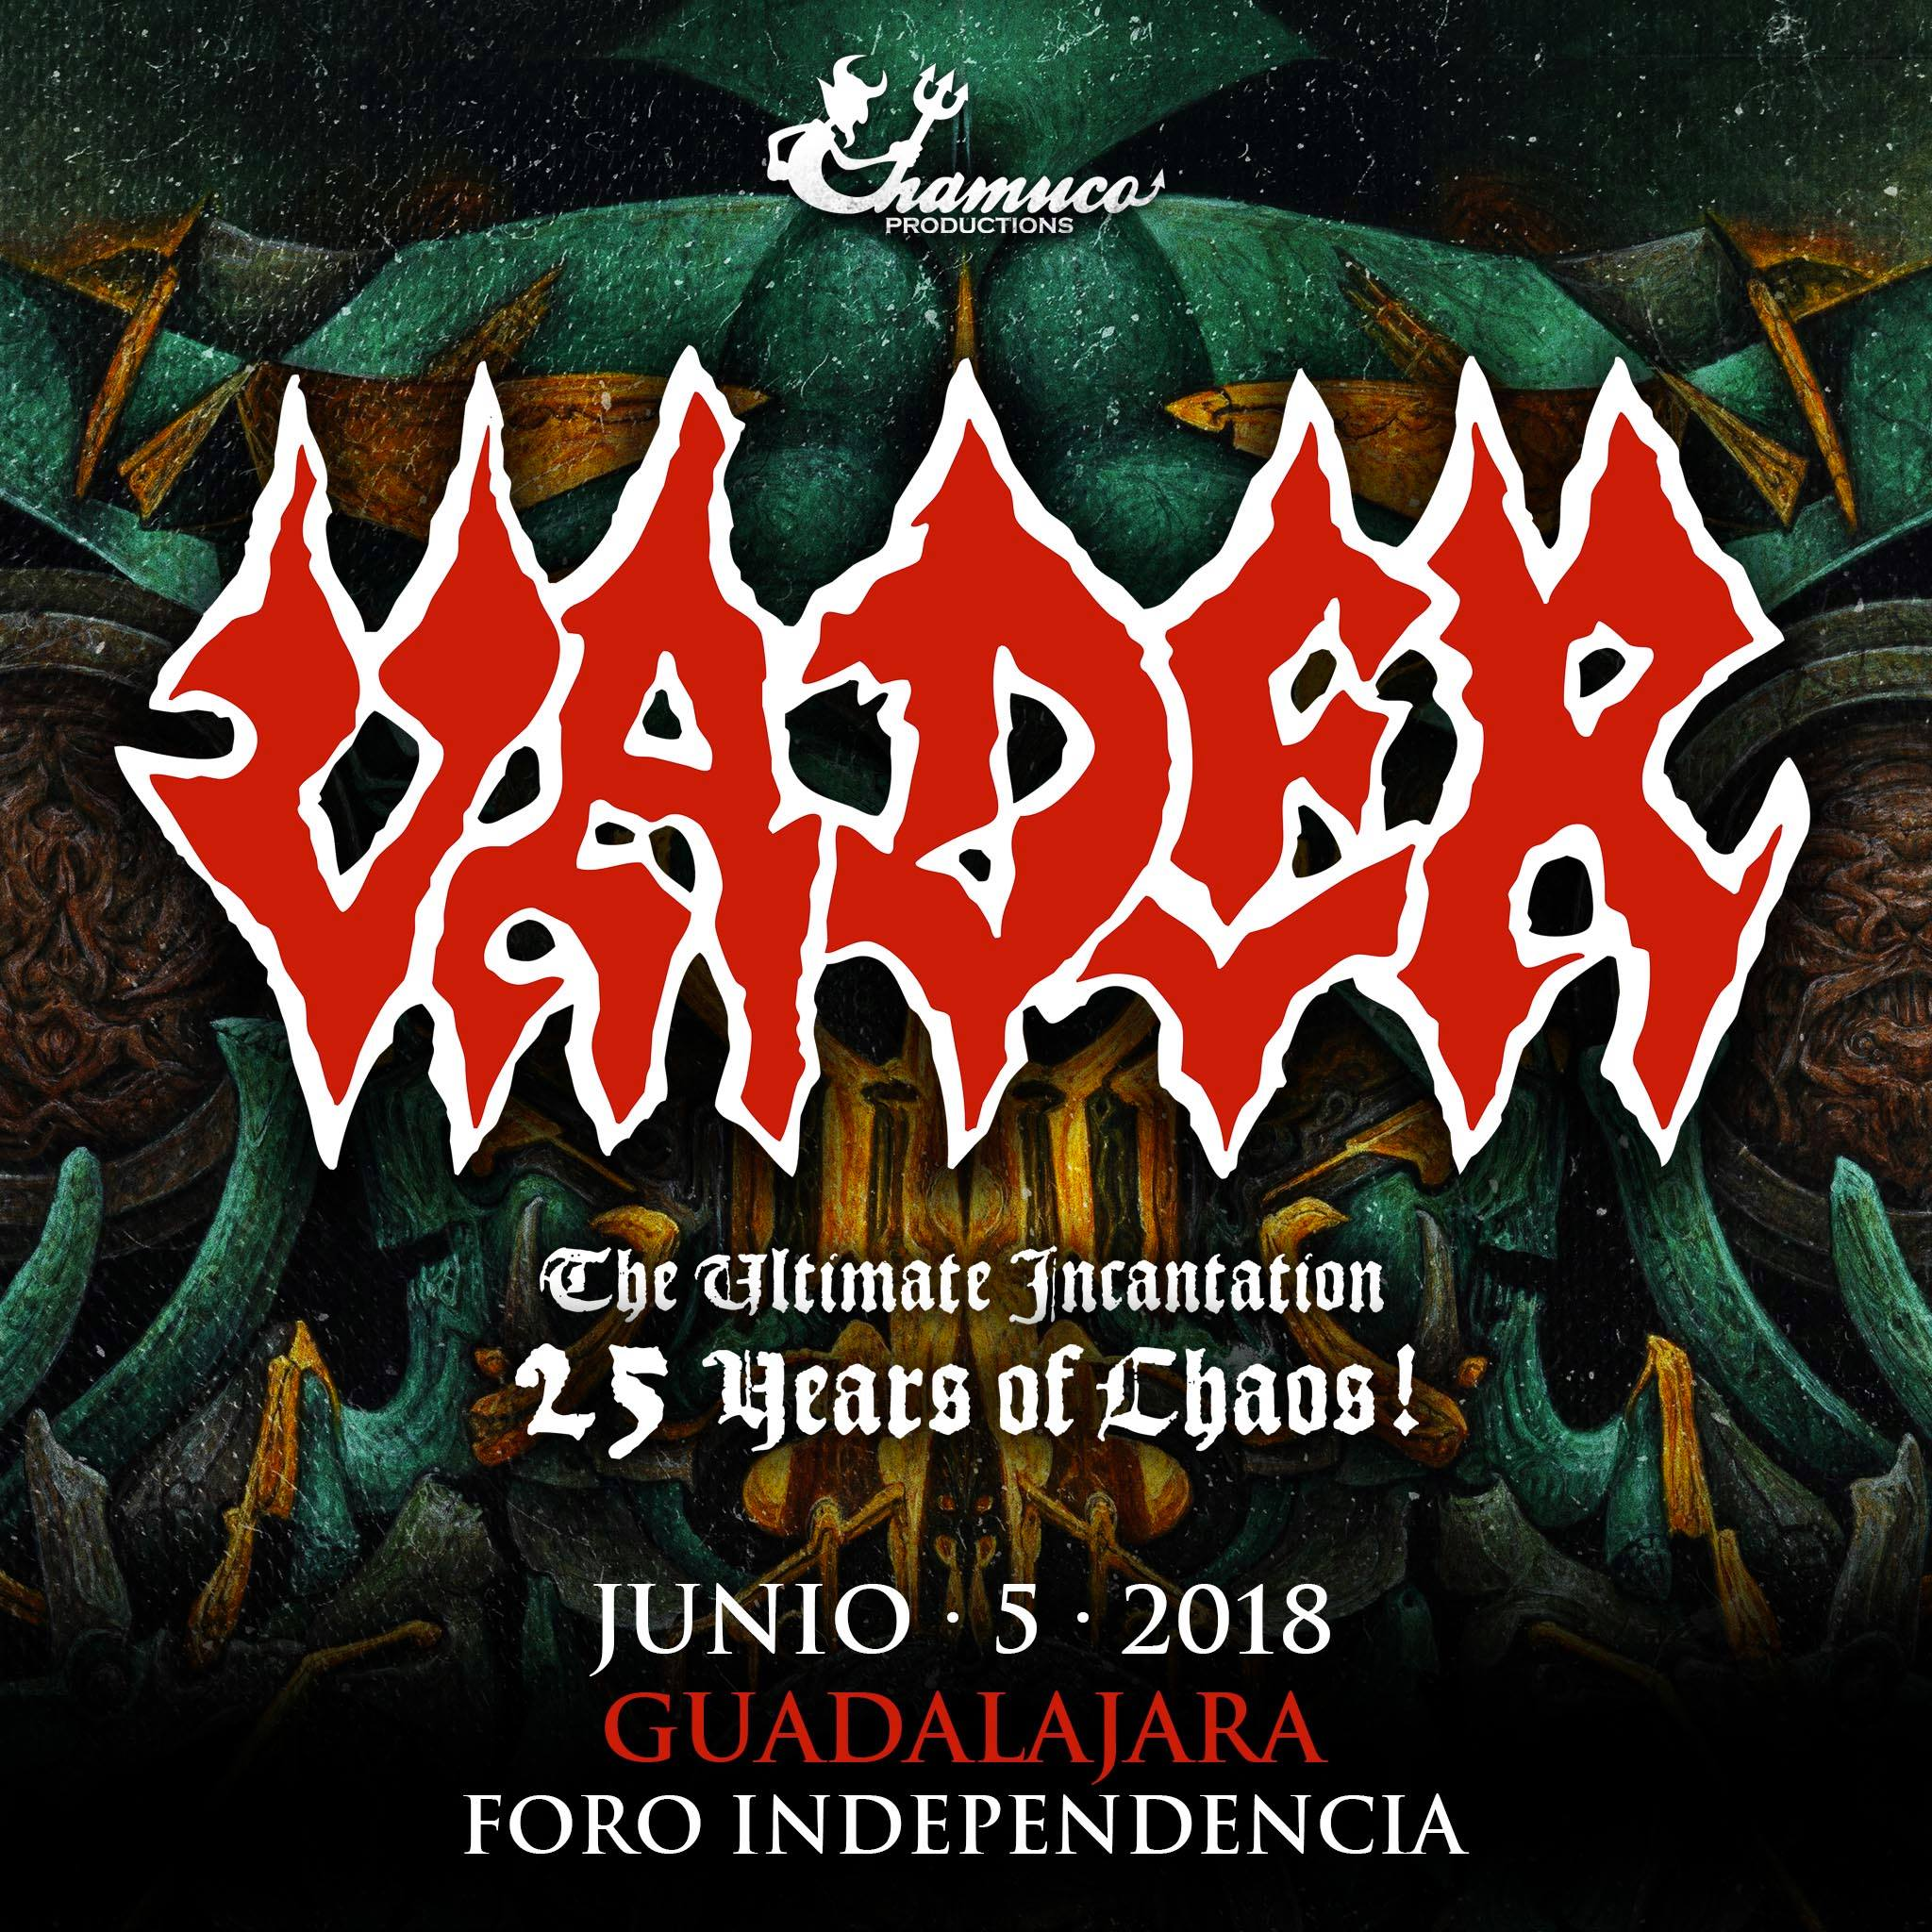 Vader / Foro Independencia